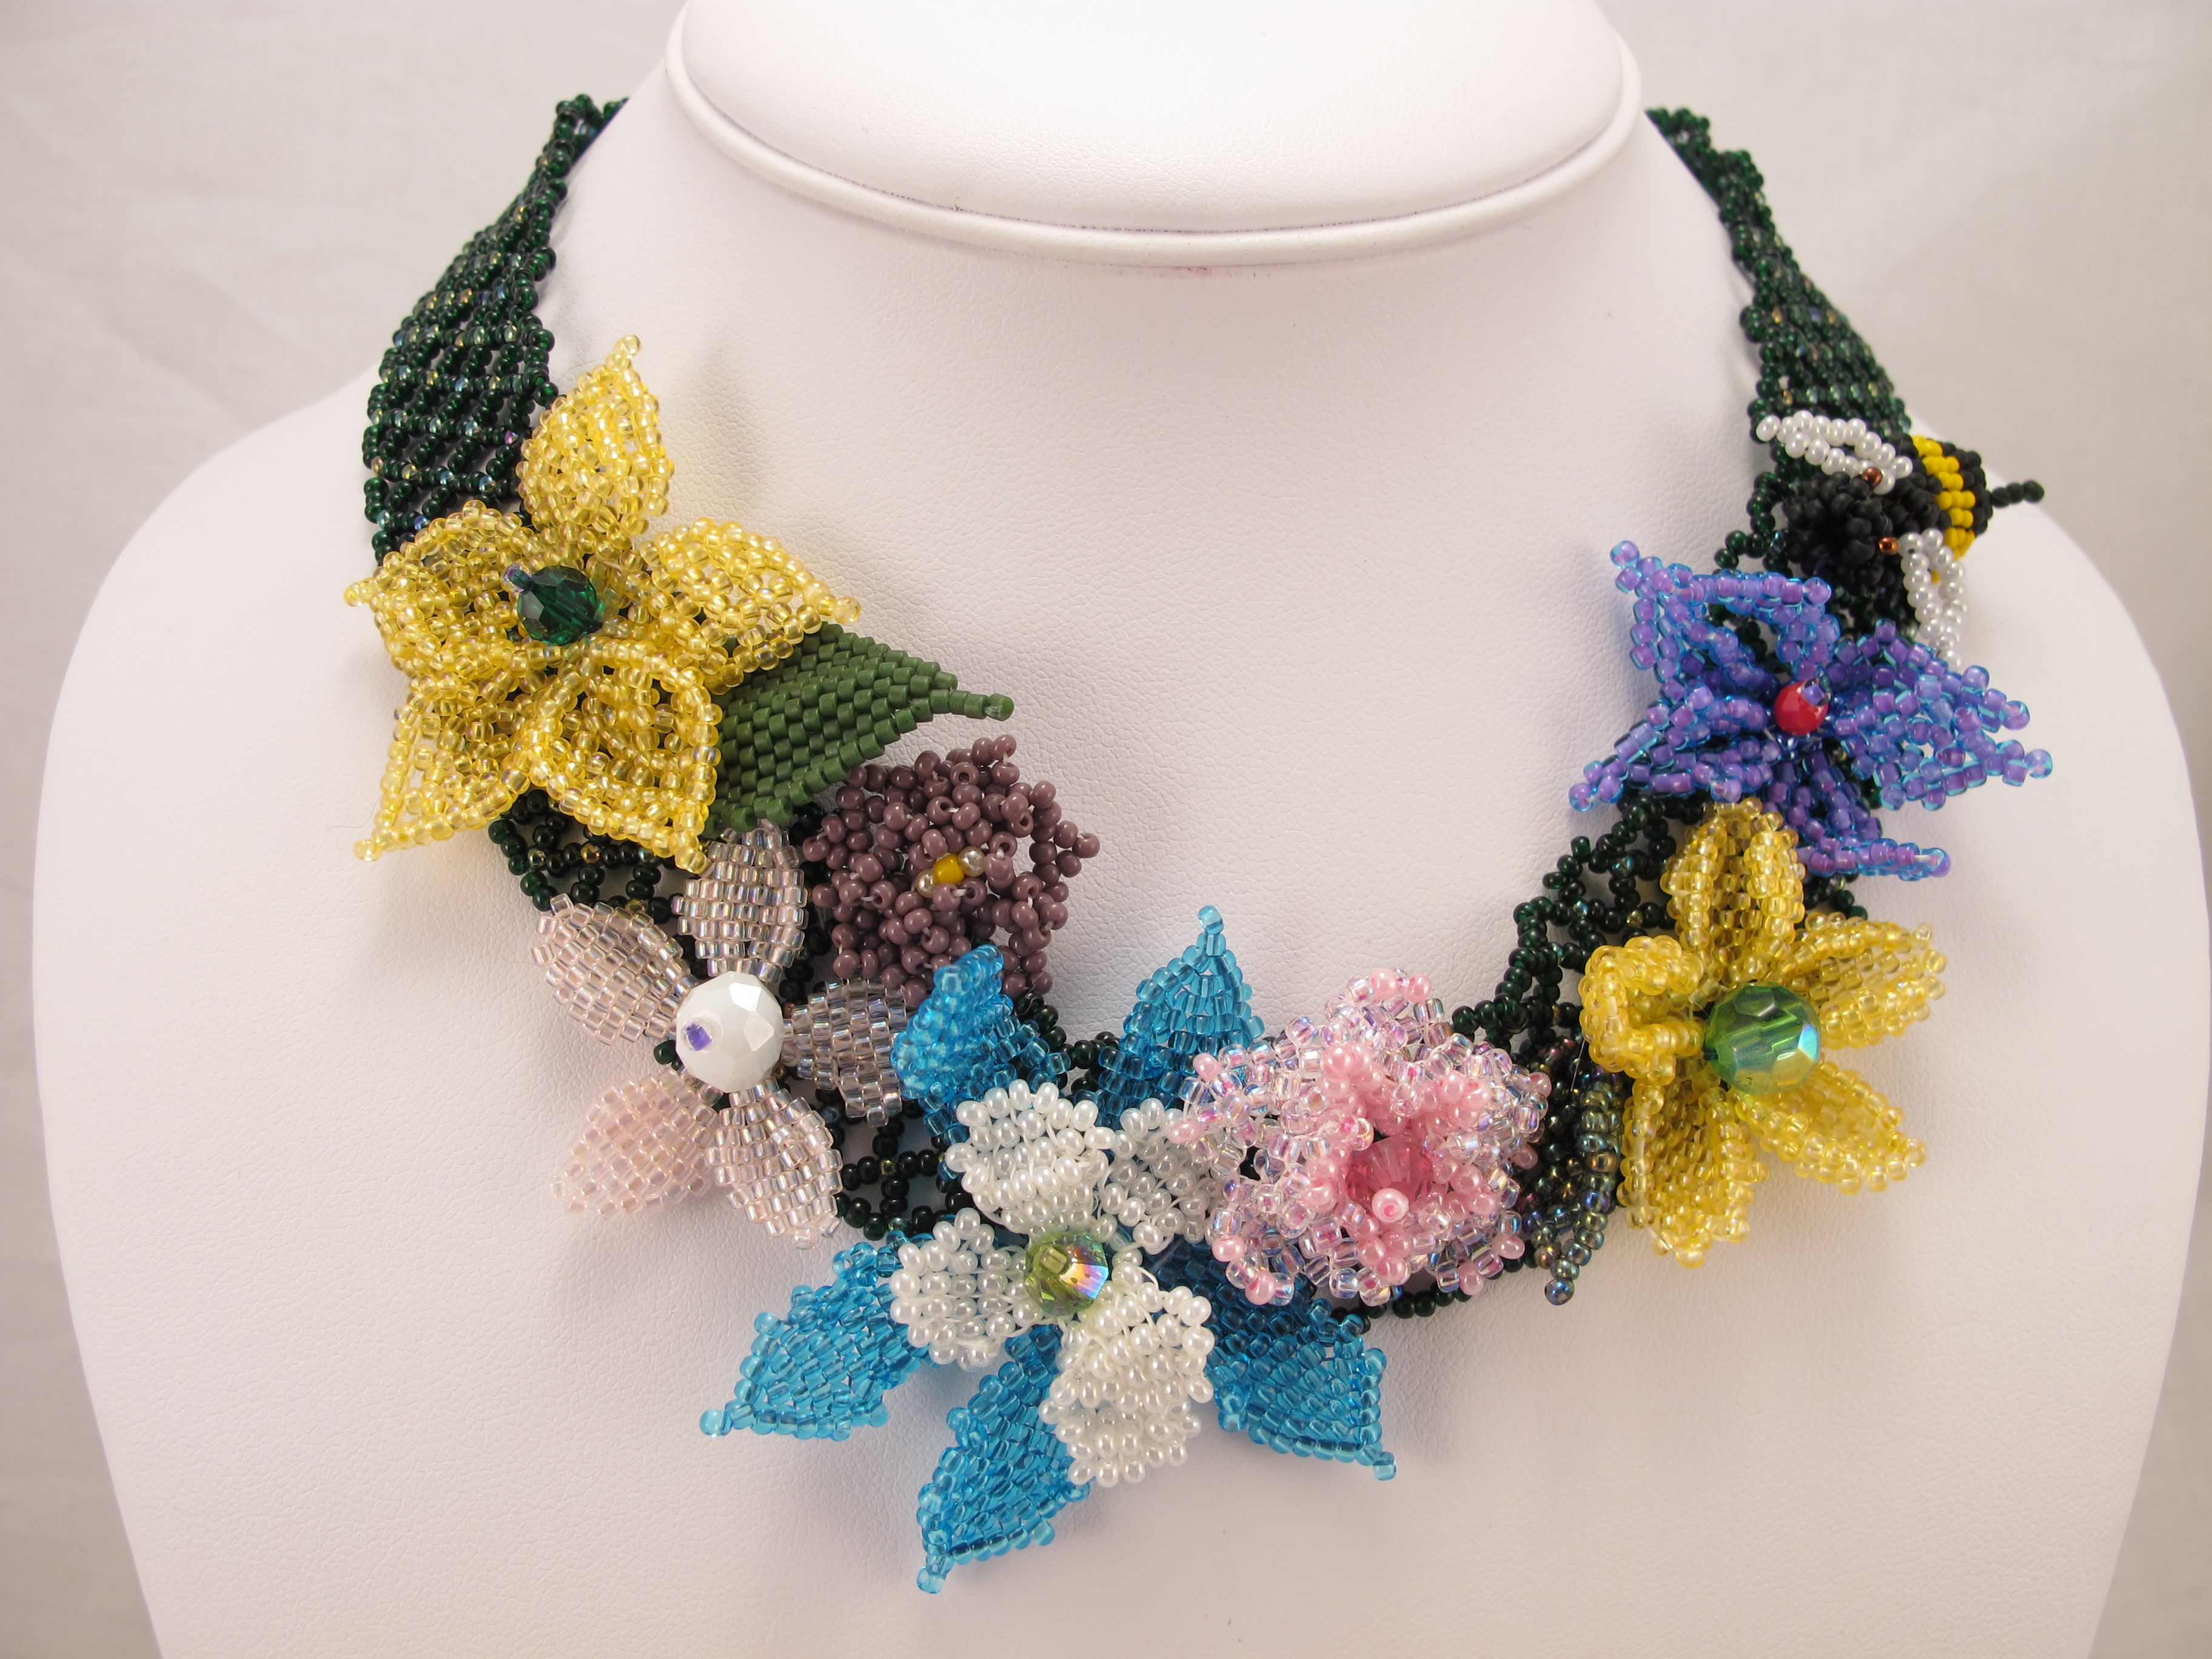 Netted base with beaded flowers made by ME!  https://www.etsy.com/listing/184413955/necklace-netted-base-sporting-a-variety?ref=shop_home_active_2